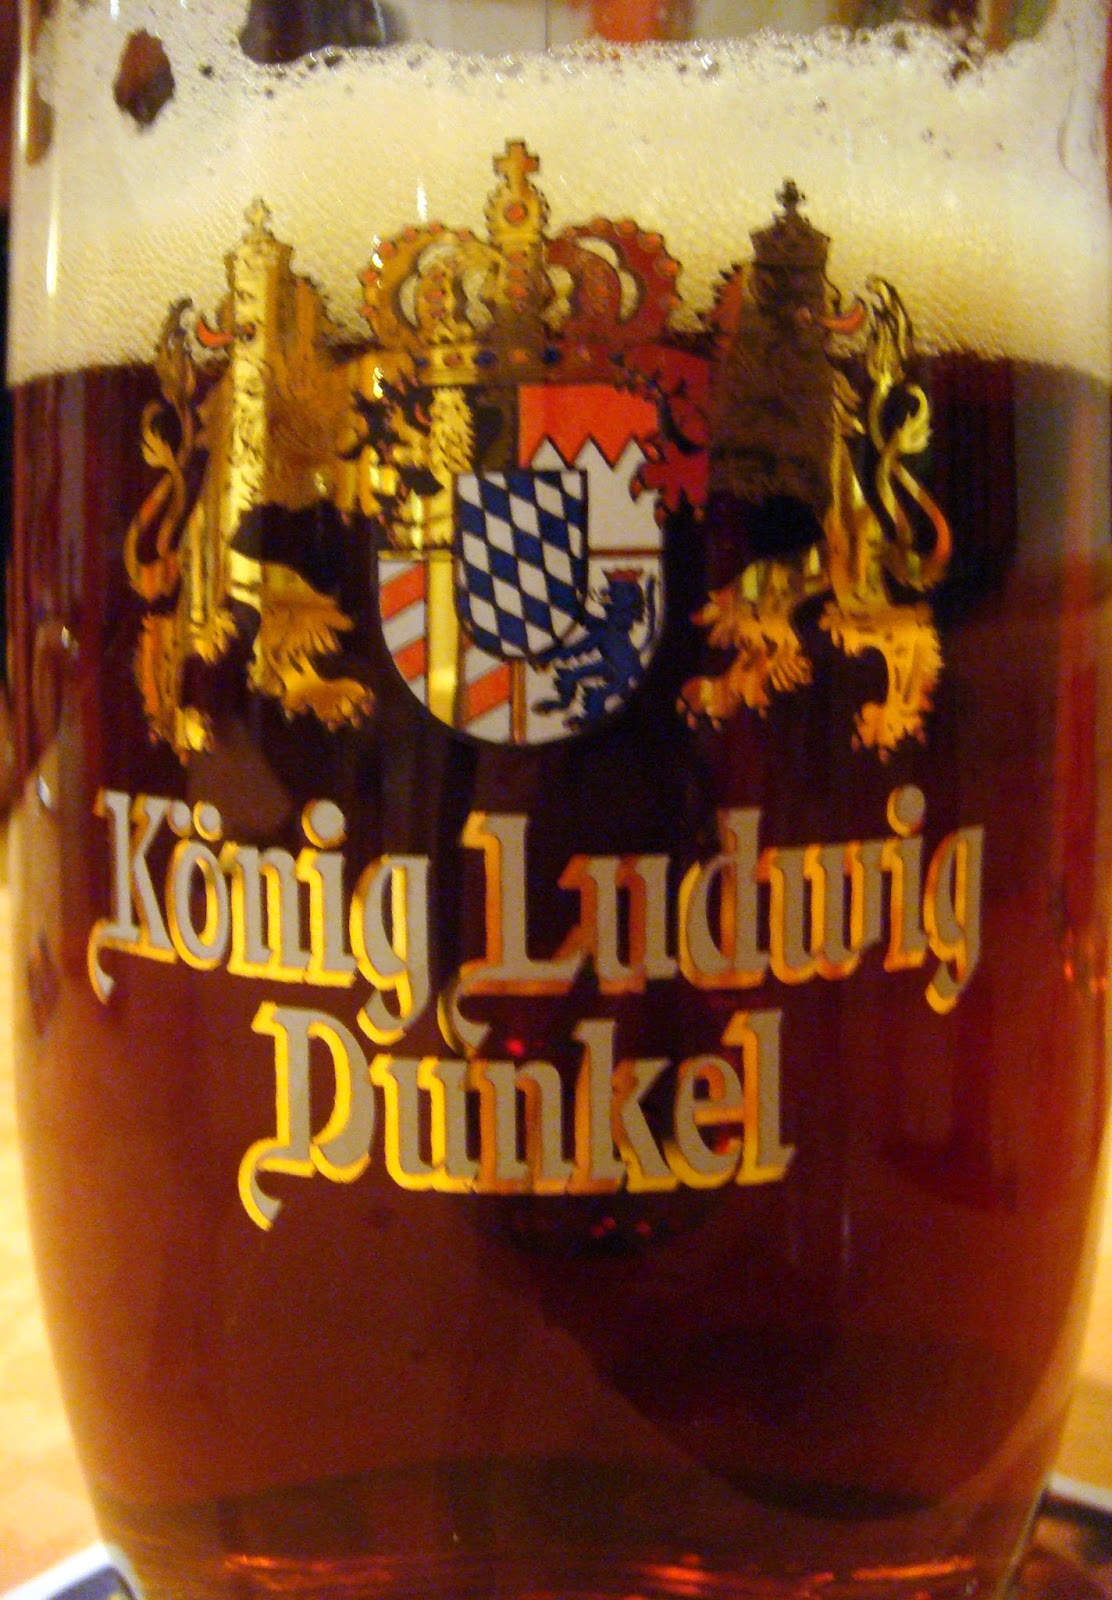 Konig Ludwig Dunkle beer - The Tipsy Terrier blog